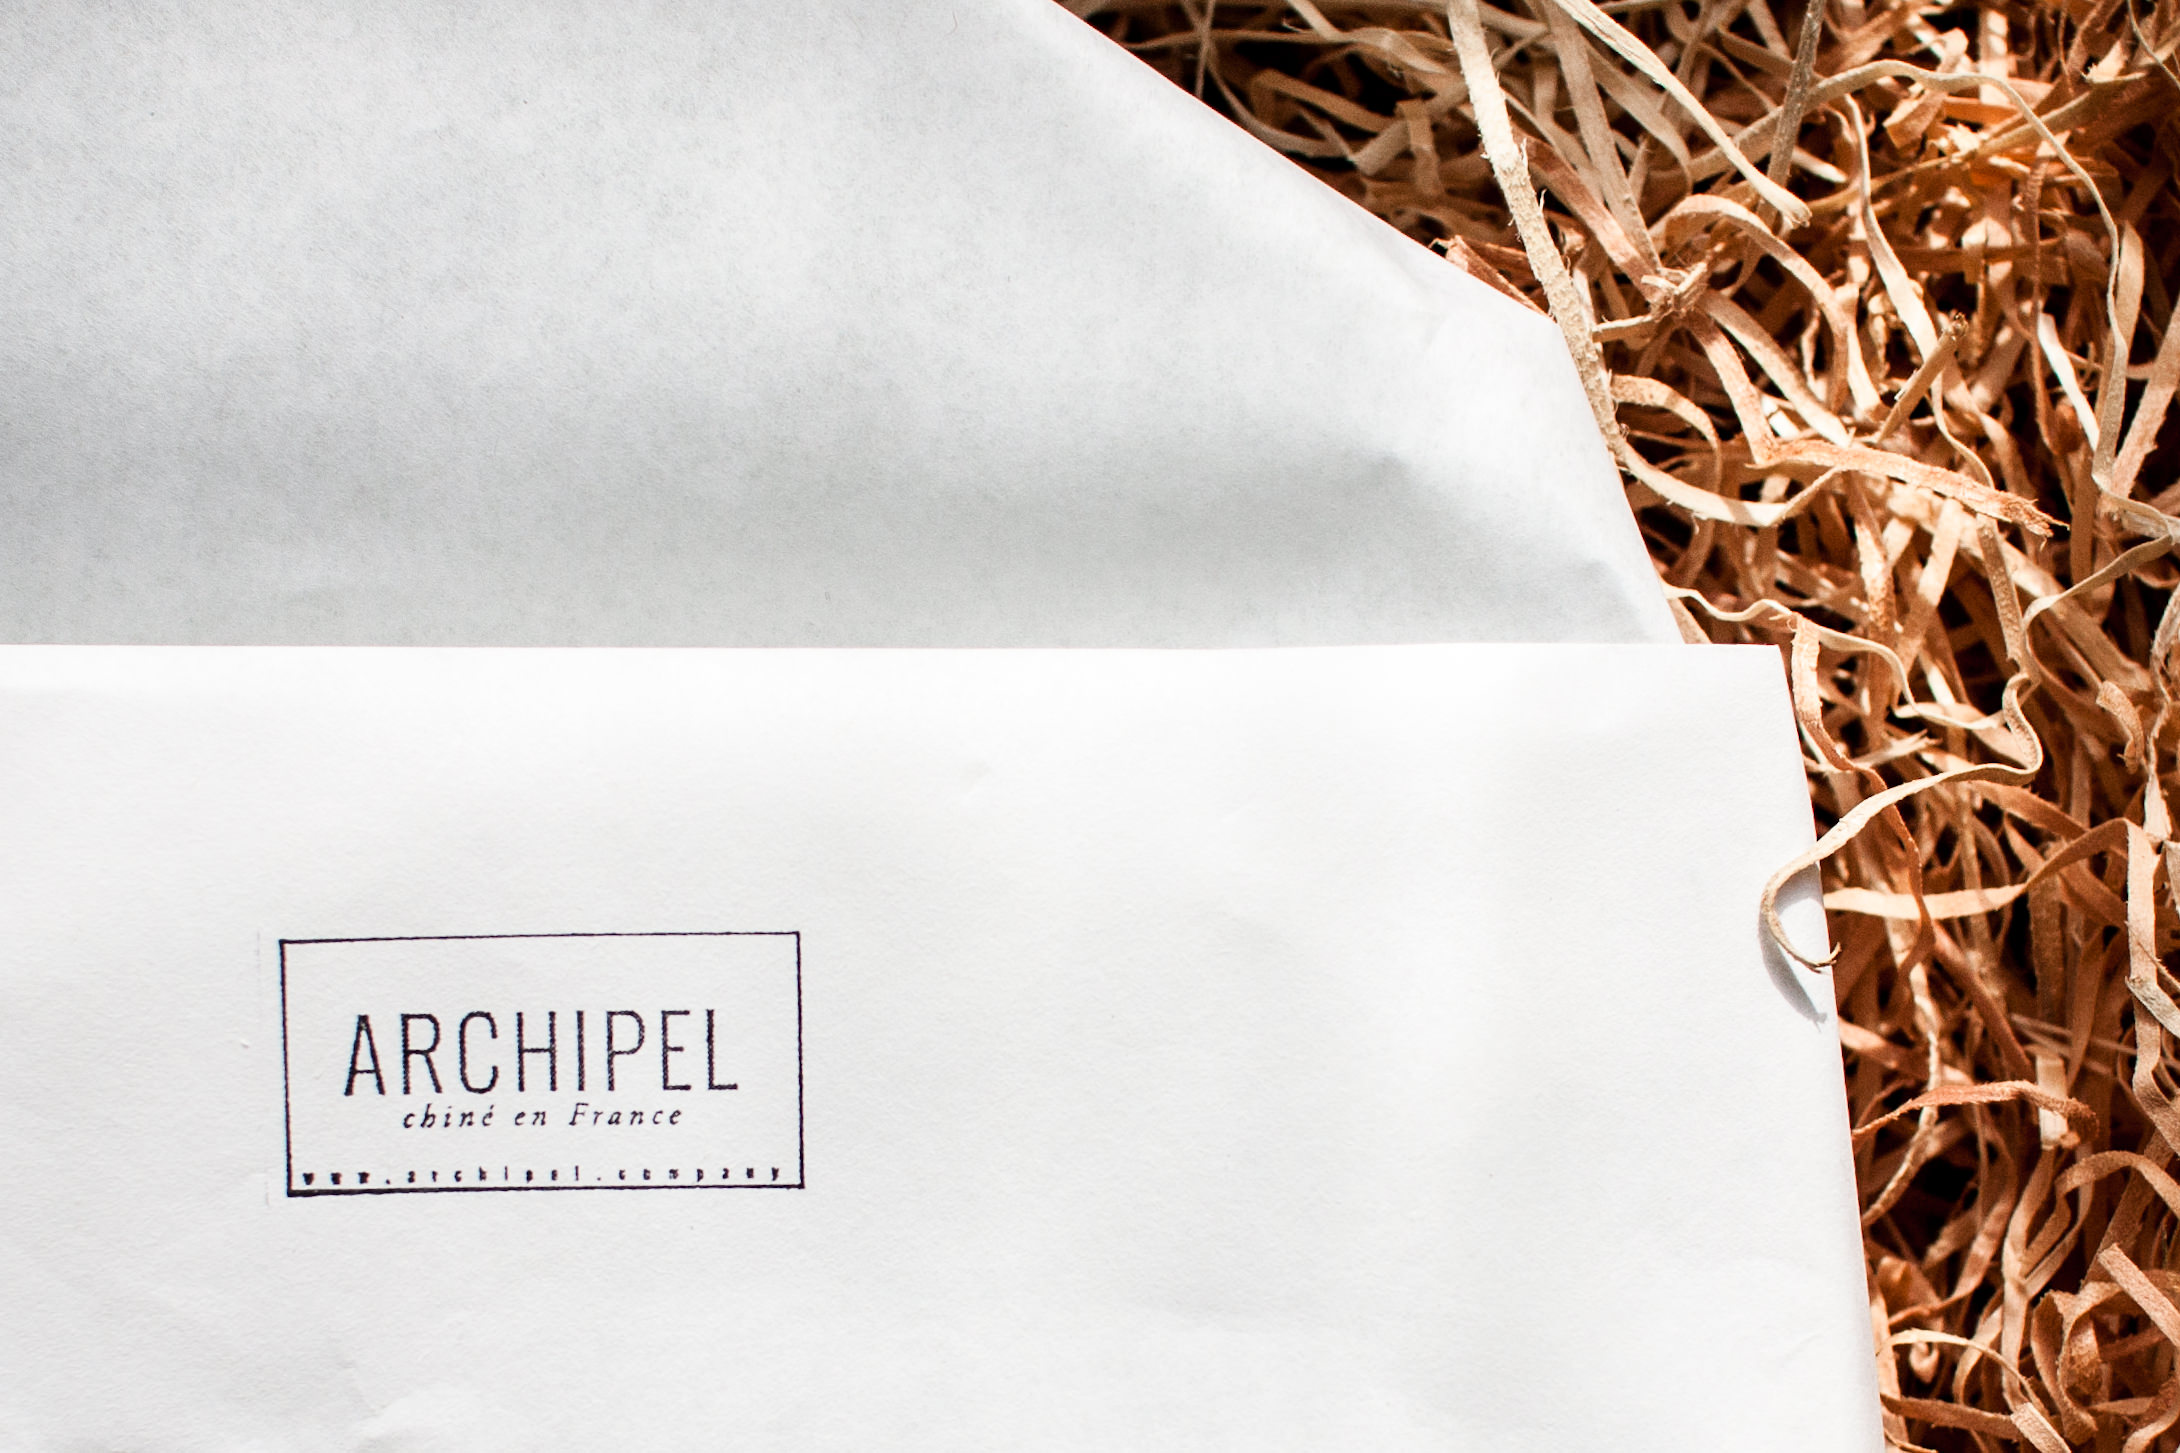 ARCHIPEL-Packaging-01.jpg